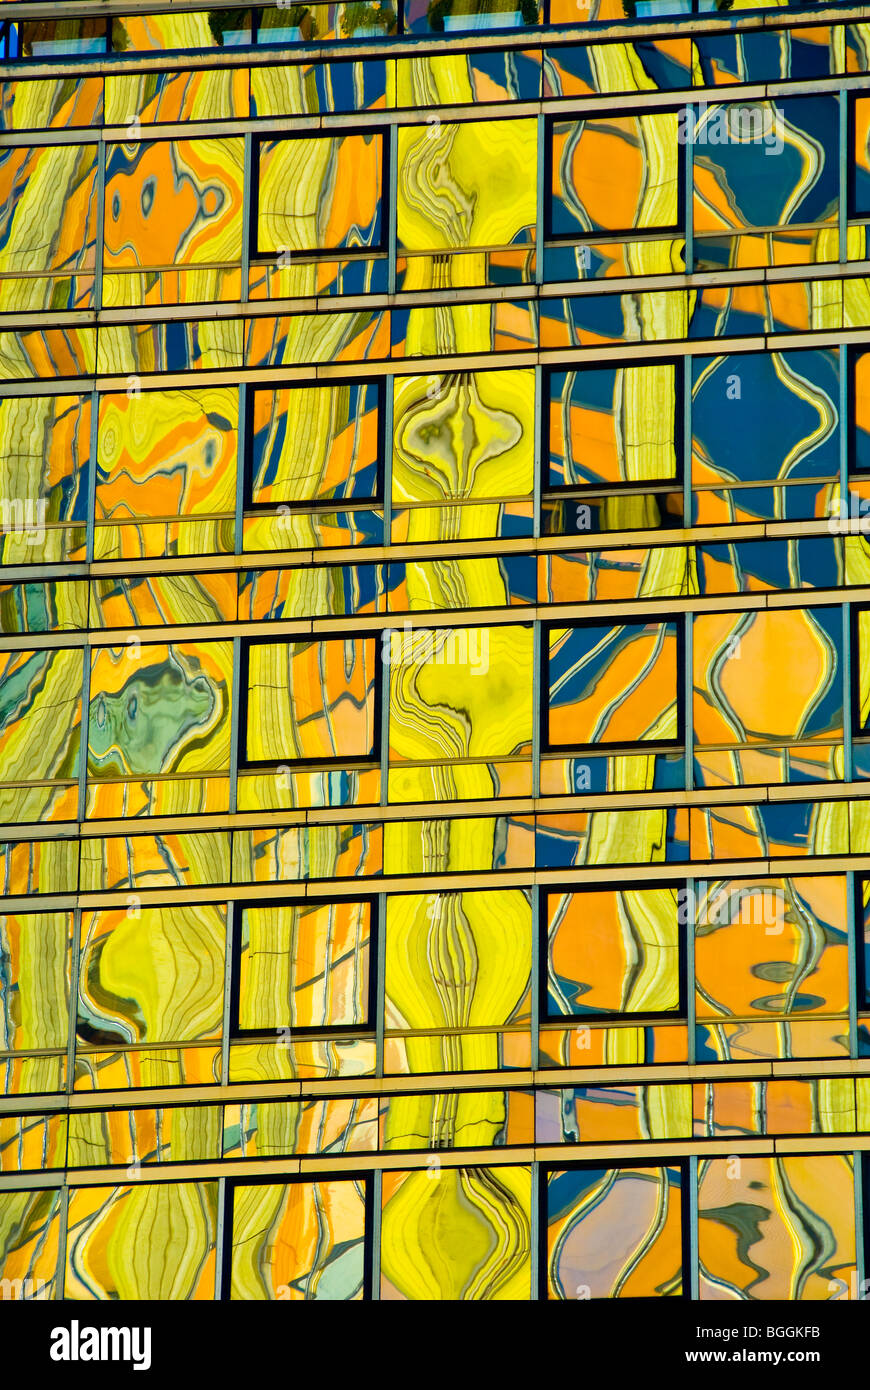 Colorful reflections in the glass surface of a high-rise building in Buenos Aires, Argentina Stock Photo